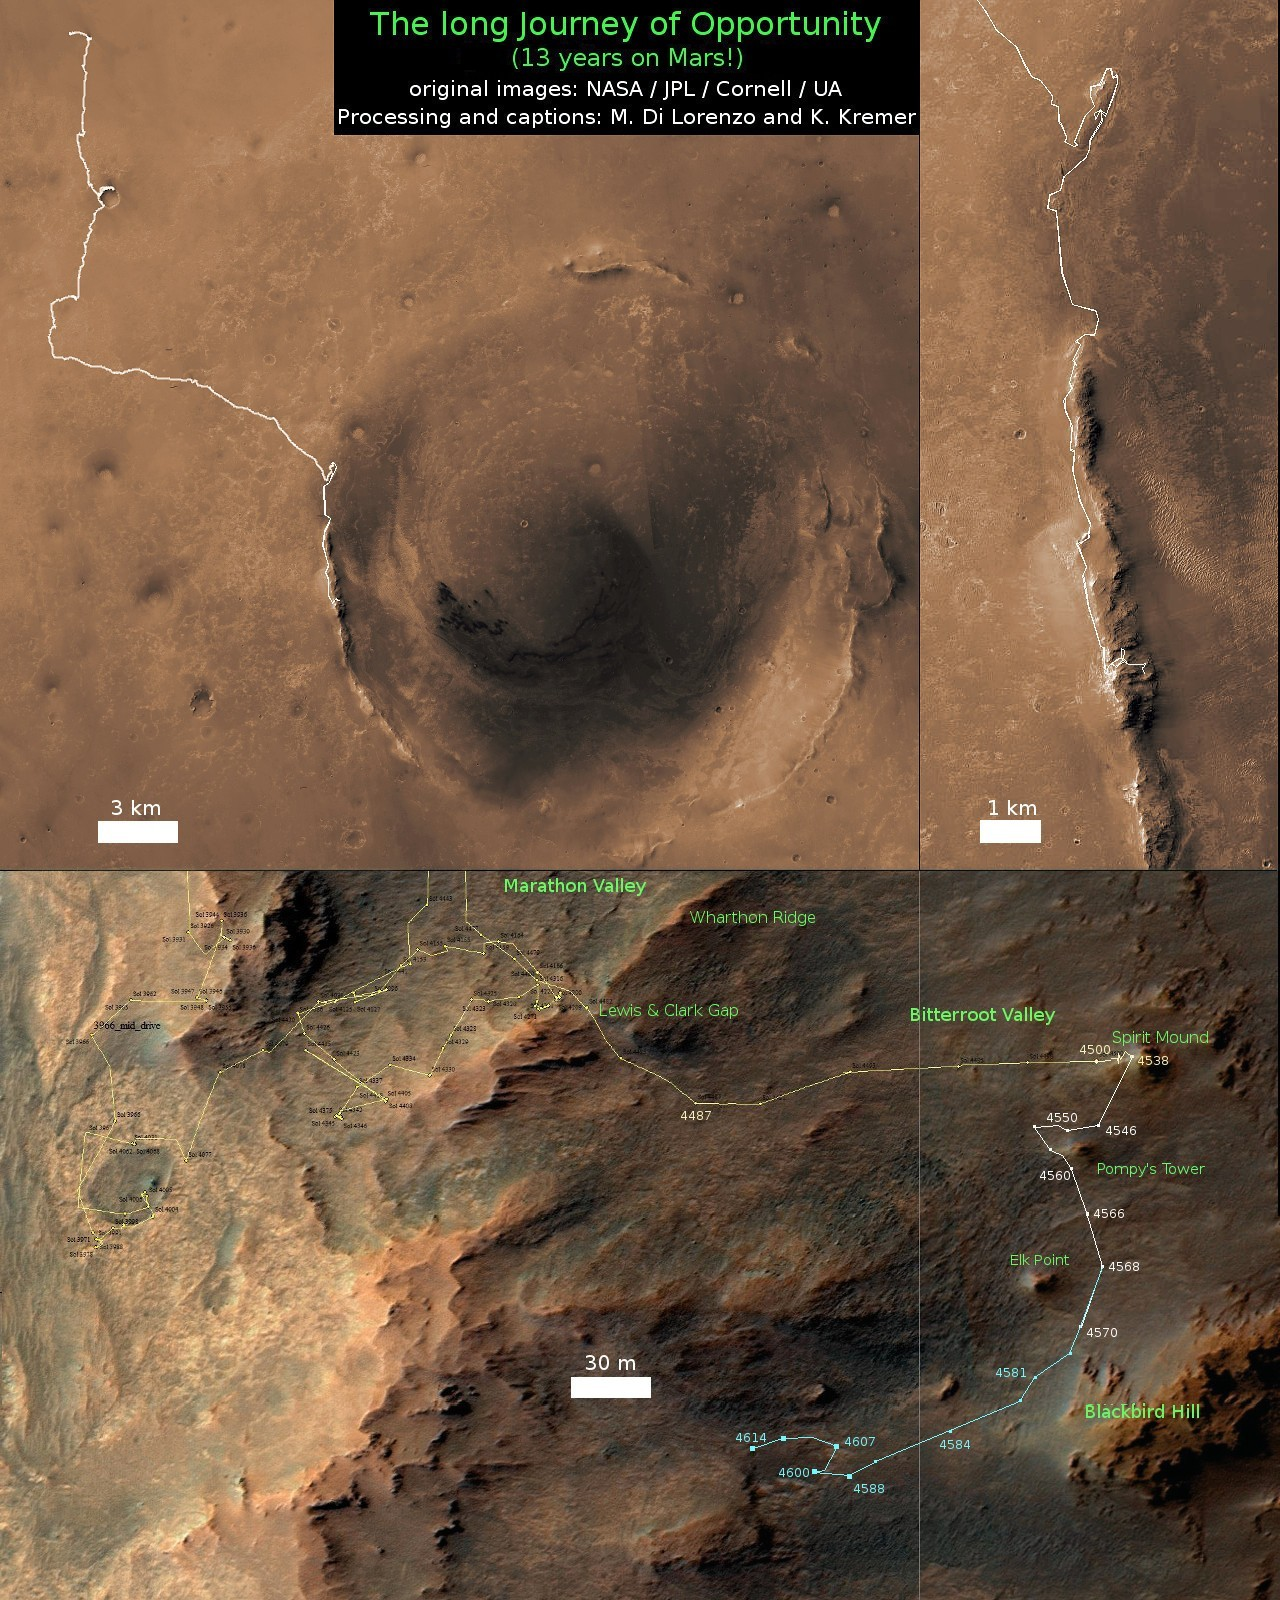 Outstanding Opportunity Rover Making Amazing New Discoveries 13